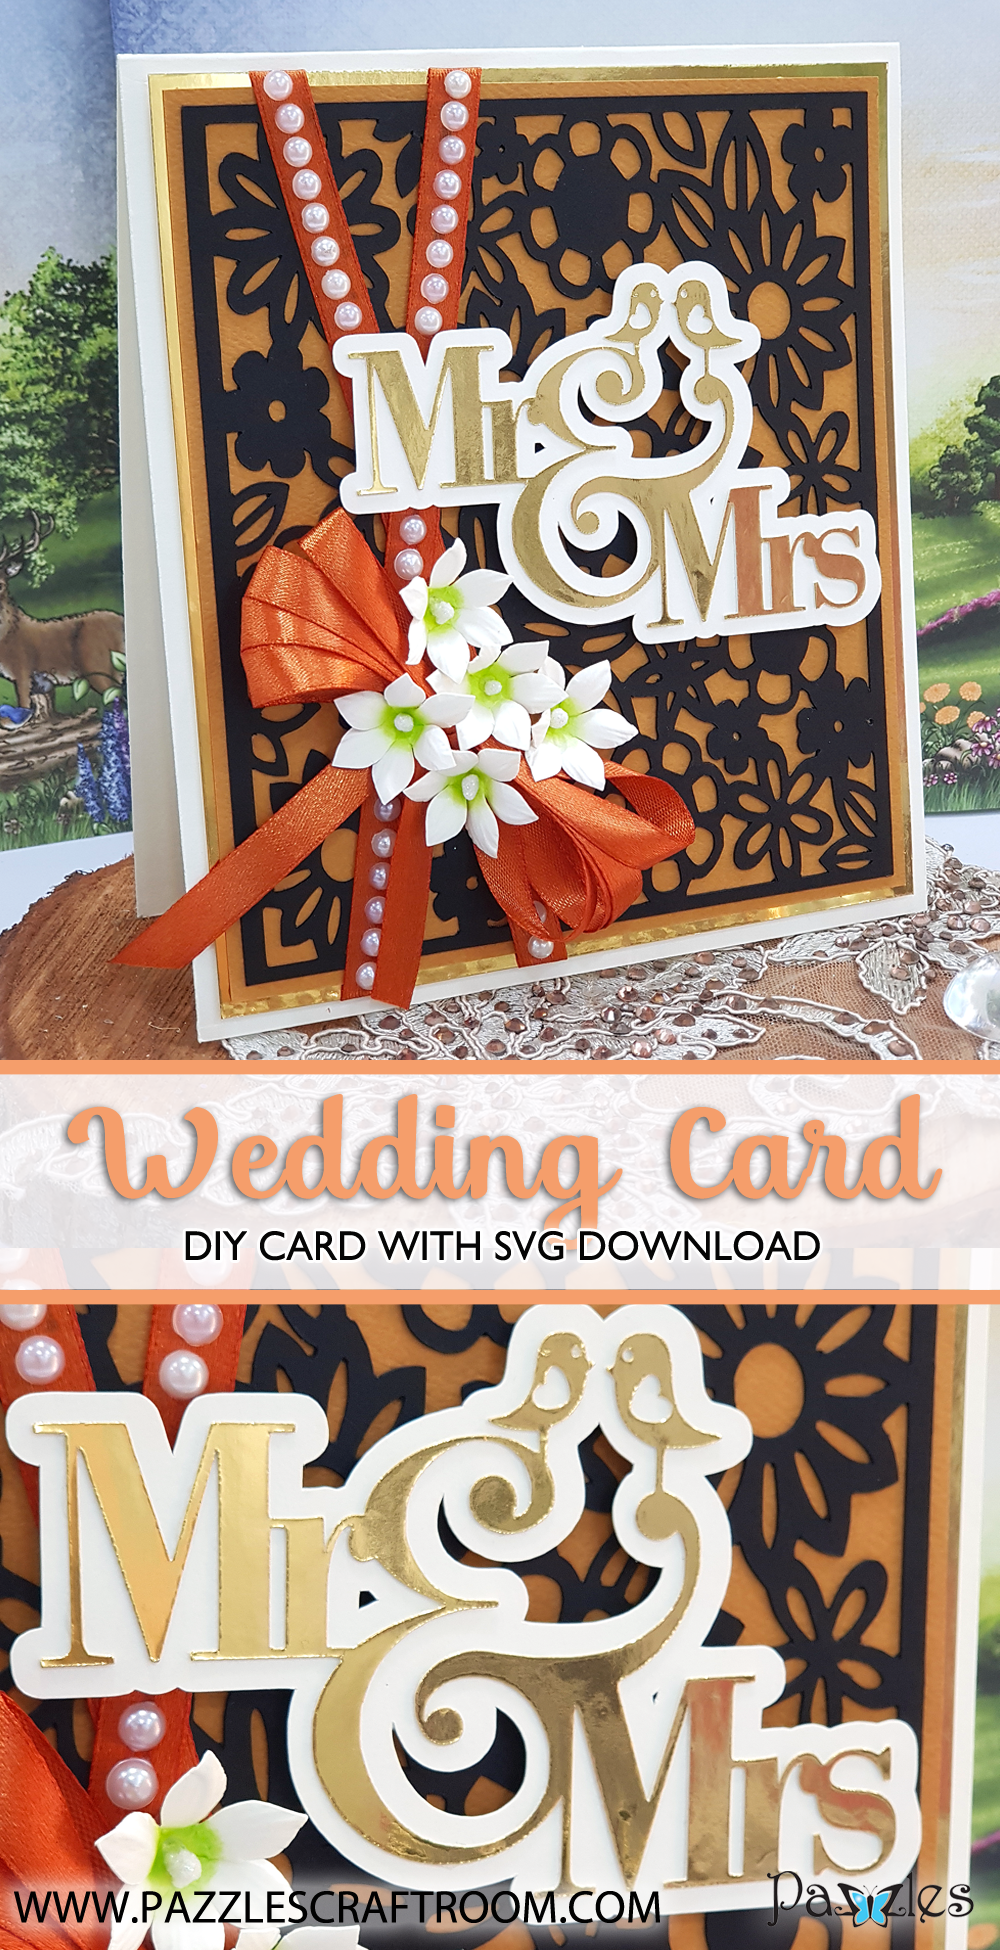 Pazzles Mr and Mrs DIY Wedding Card with instant SVG download. Compatible with all major electronic cutters including Pazzles Inspiration, Cricut, and Silhouette Cameo. Design by Nida Tanweer.